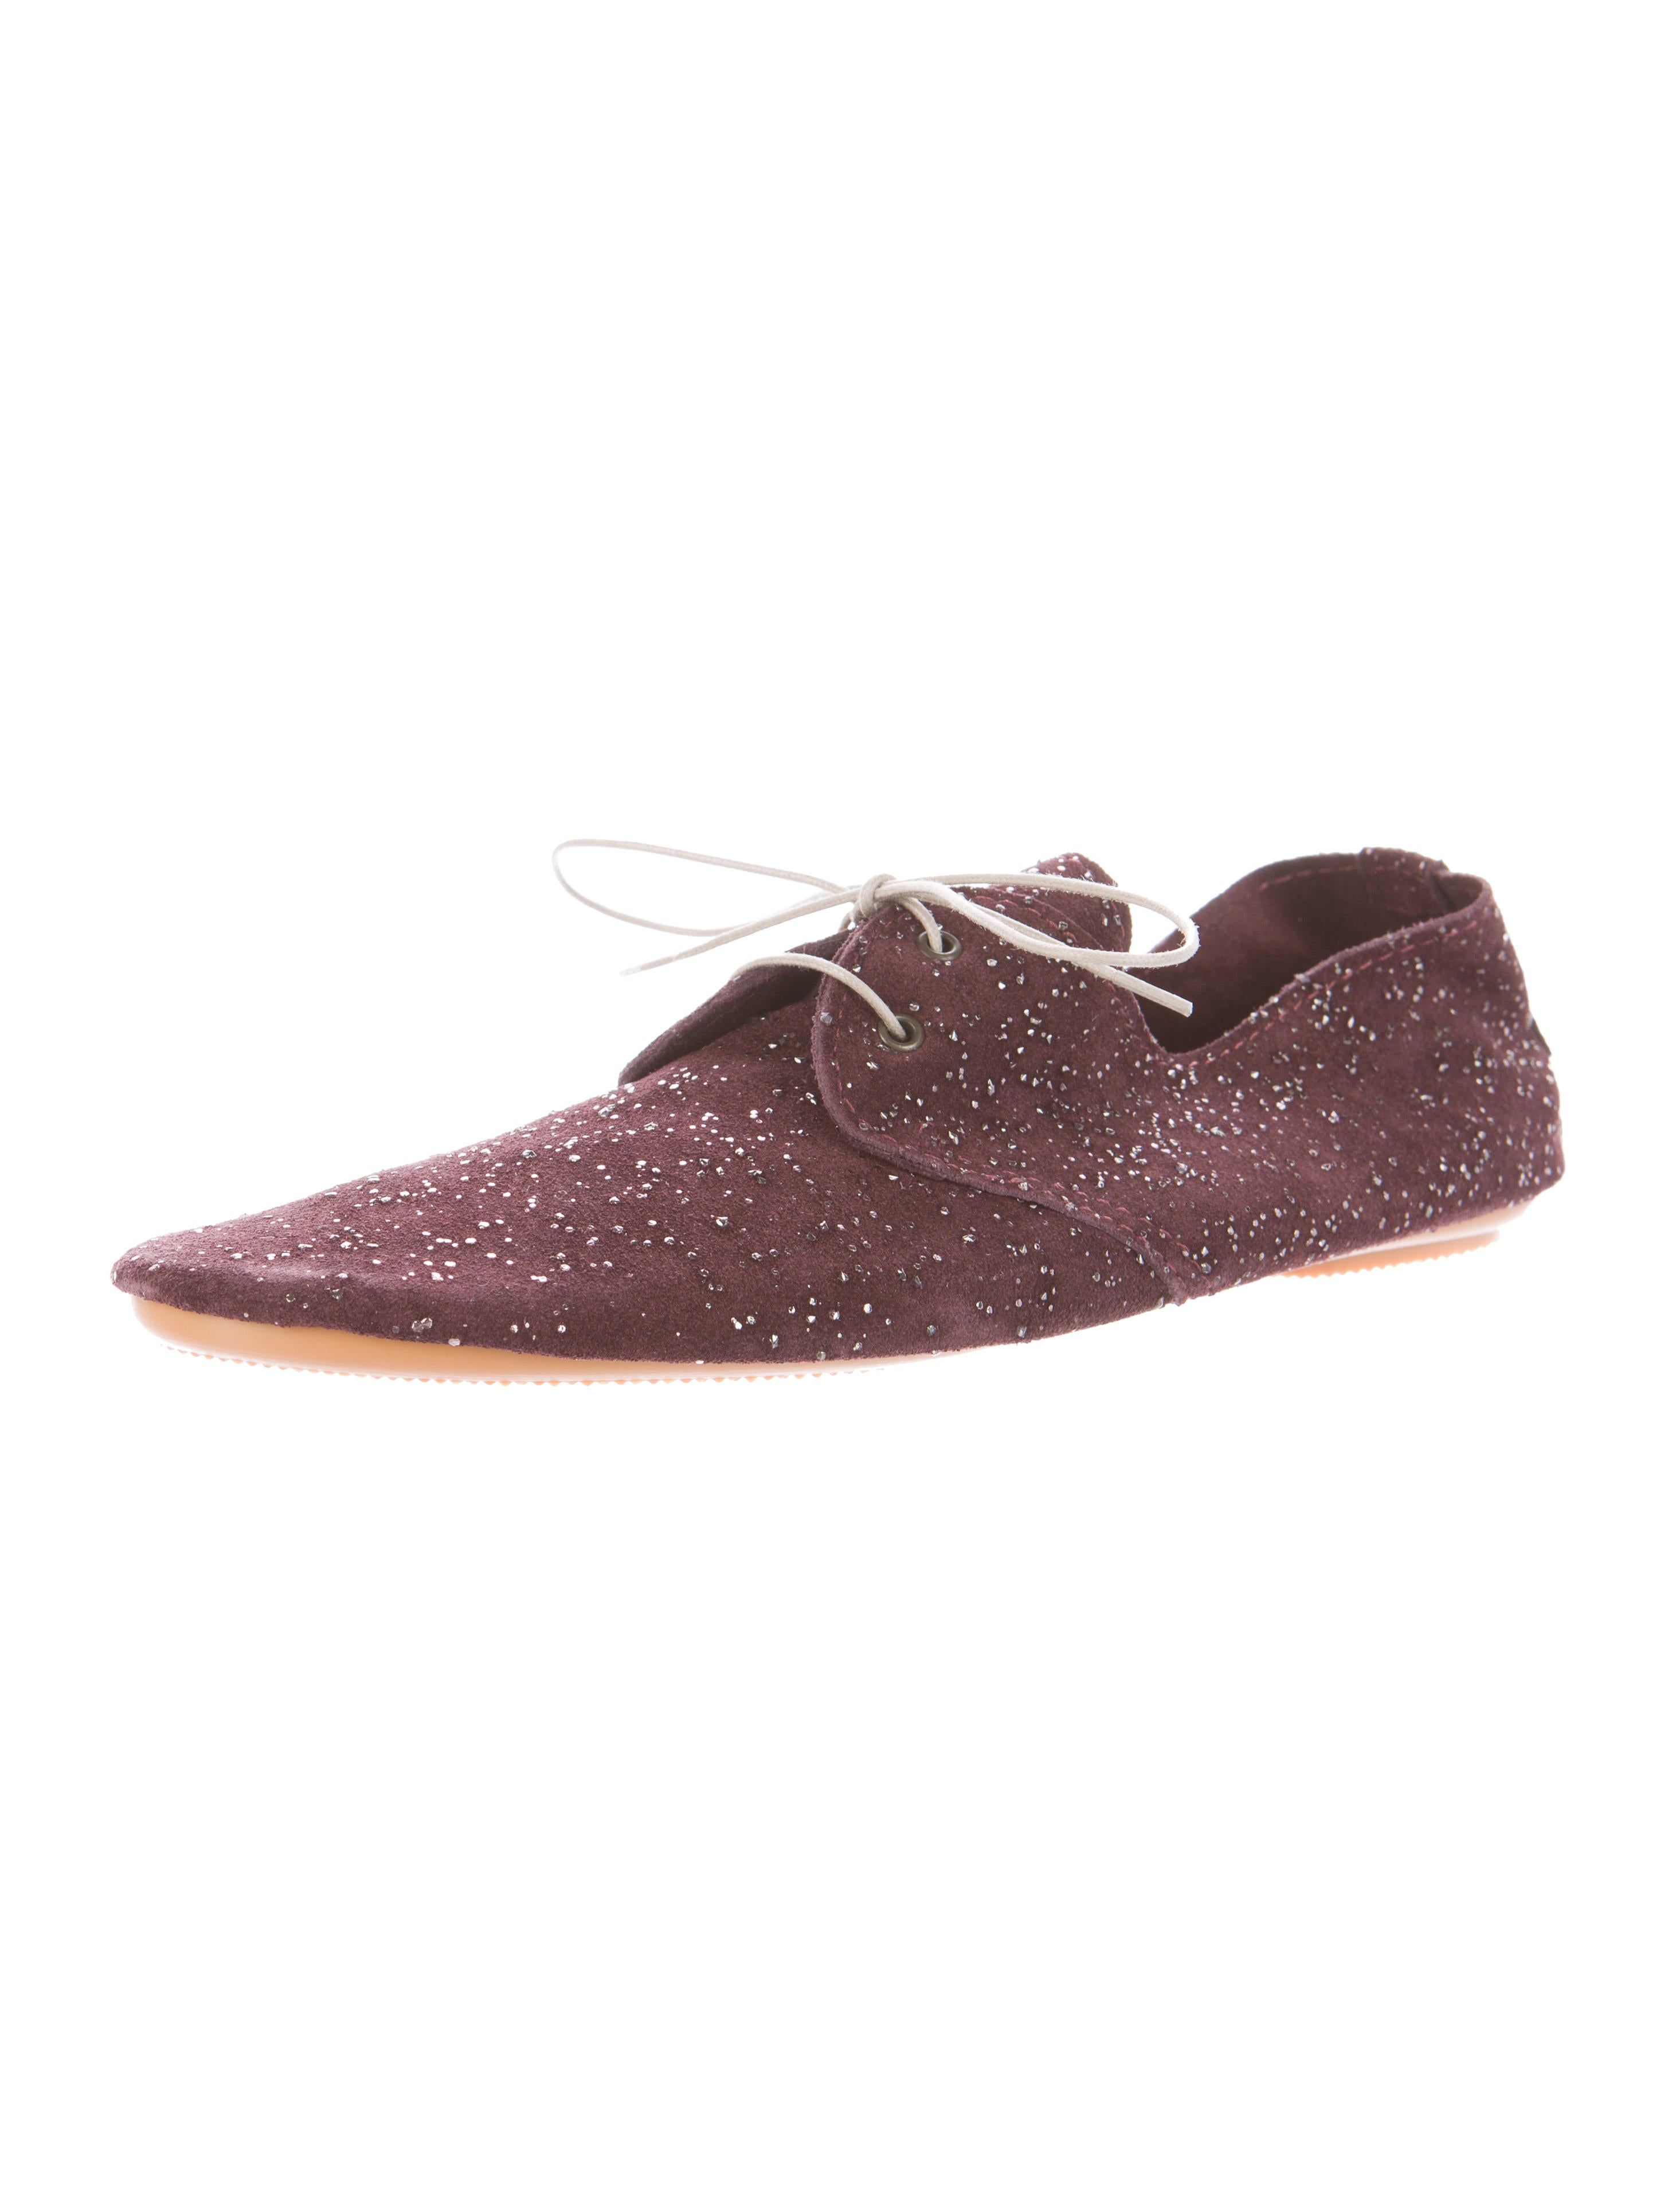 fast delivery cheap price Anniel Glittered Suede Oxfords w/ Tags sale online store outlet authentic lEdslQd3SN